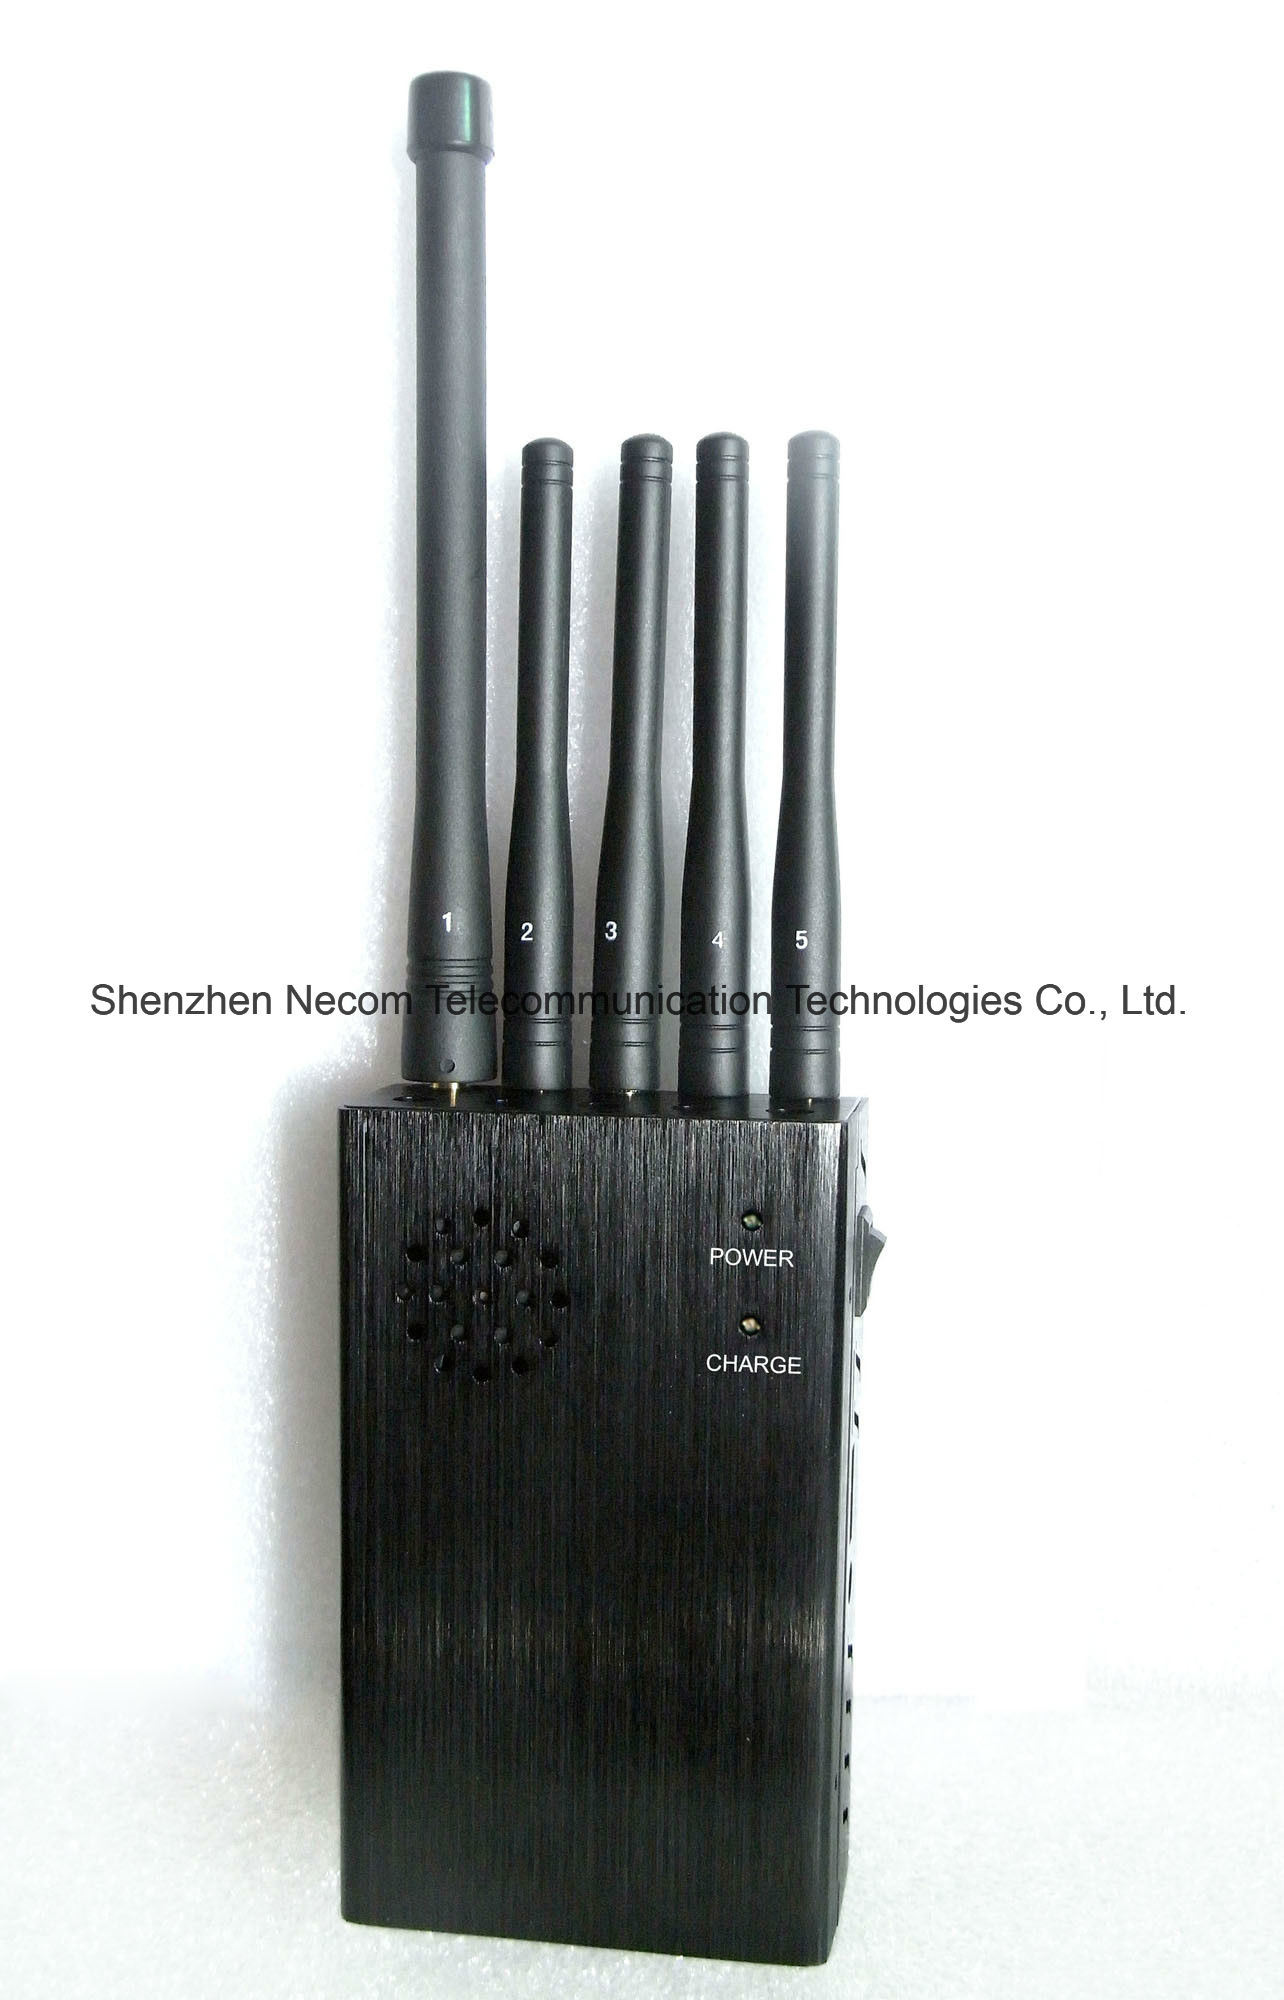 jammers dick's sporting goods - China 5 Antennas Handheld WiFi GPS Cell Phone Jammer, 5-Band Portable WiFi Bluetooth Wireless Video Cell Phone Jammer - China Portable Cellphone Jammer, GSM Jammer